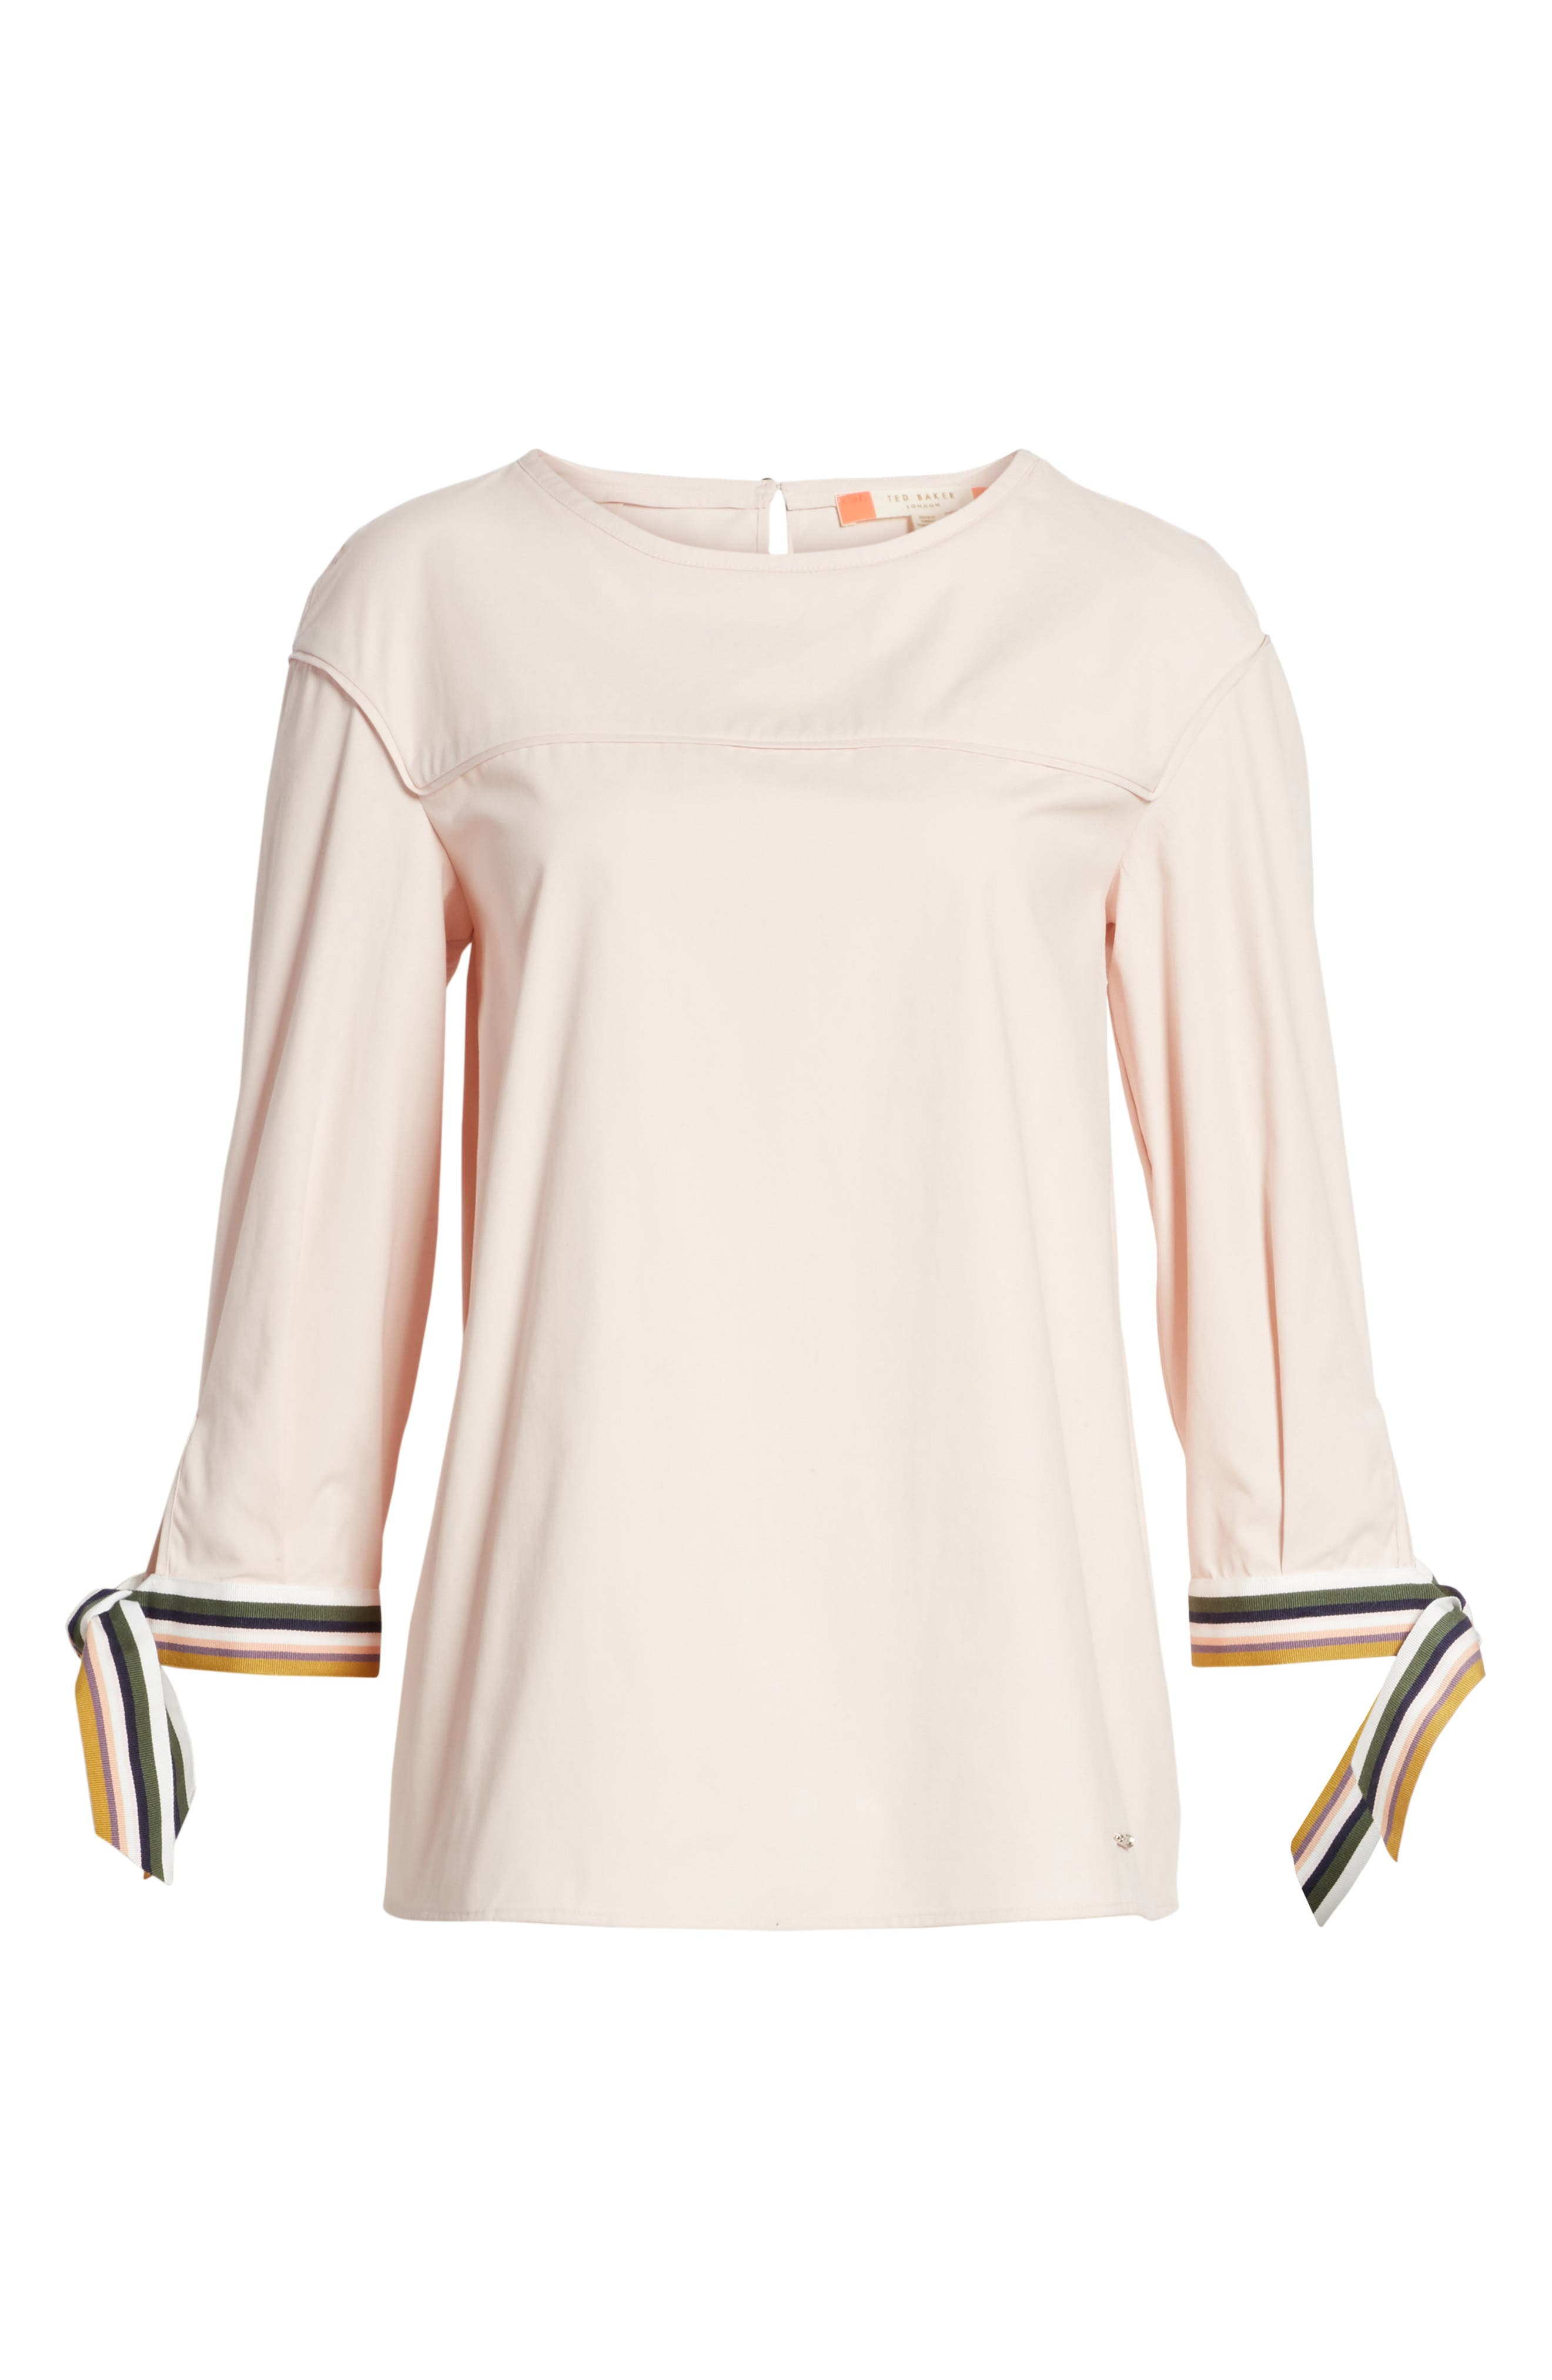 Lillou Tie Sleeve Top,                             Alternate thumbnail 6, color,                             672